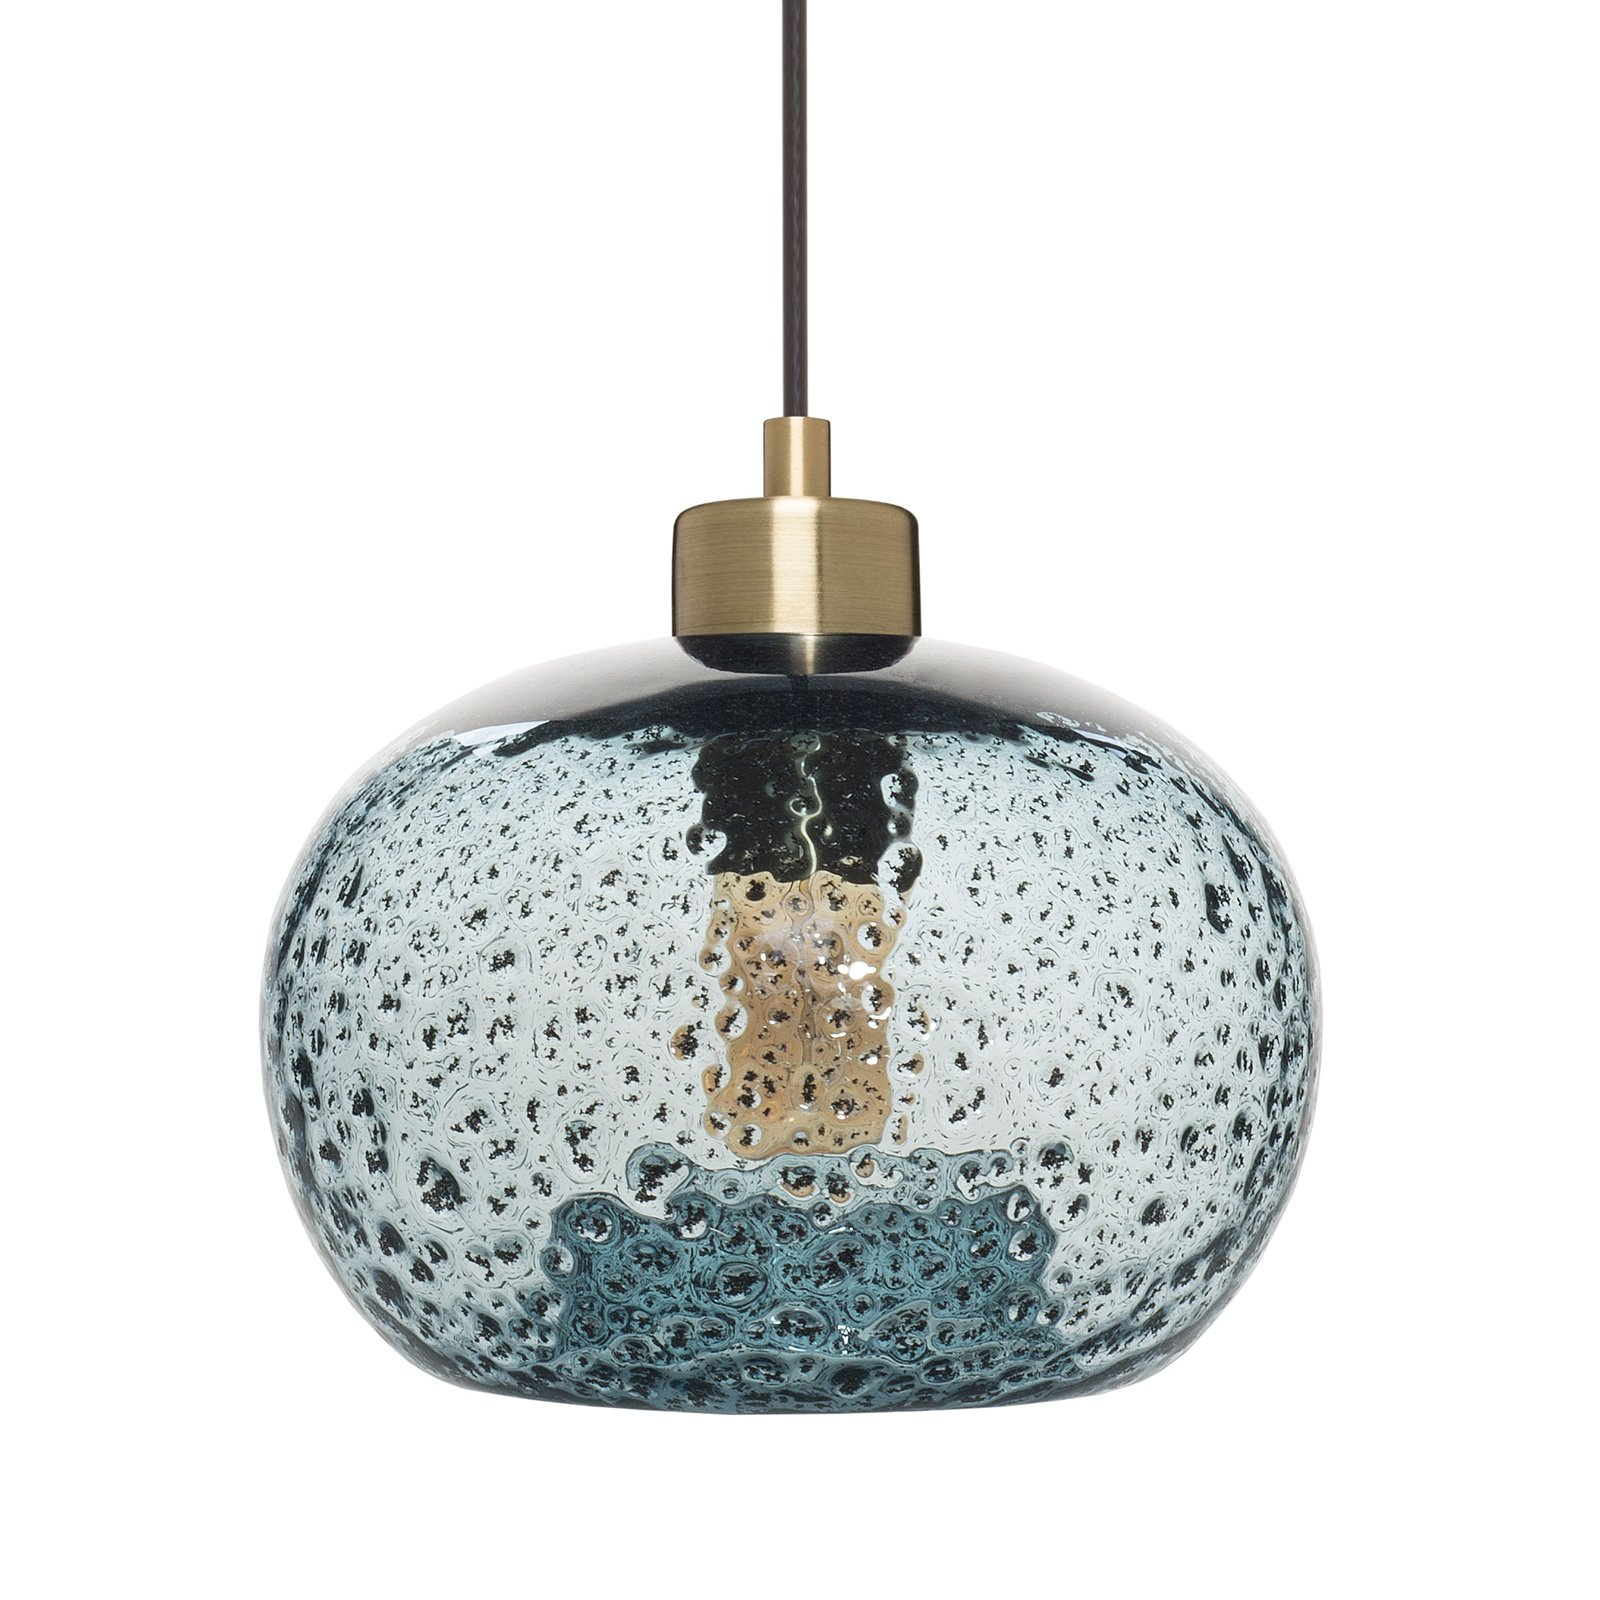 Led Rustic Light Blue Strapped Metal Pendant Light With Led: Casamotion Mini Pendant Light Handblown Rustic Seeded